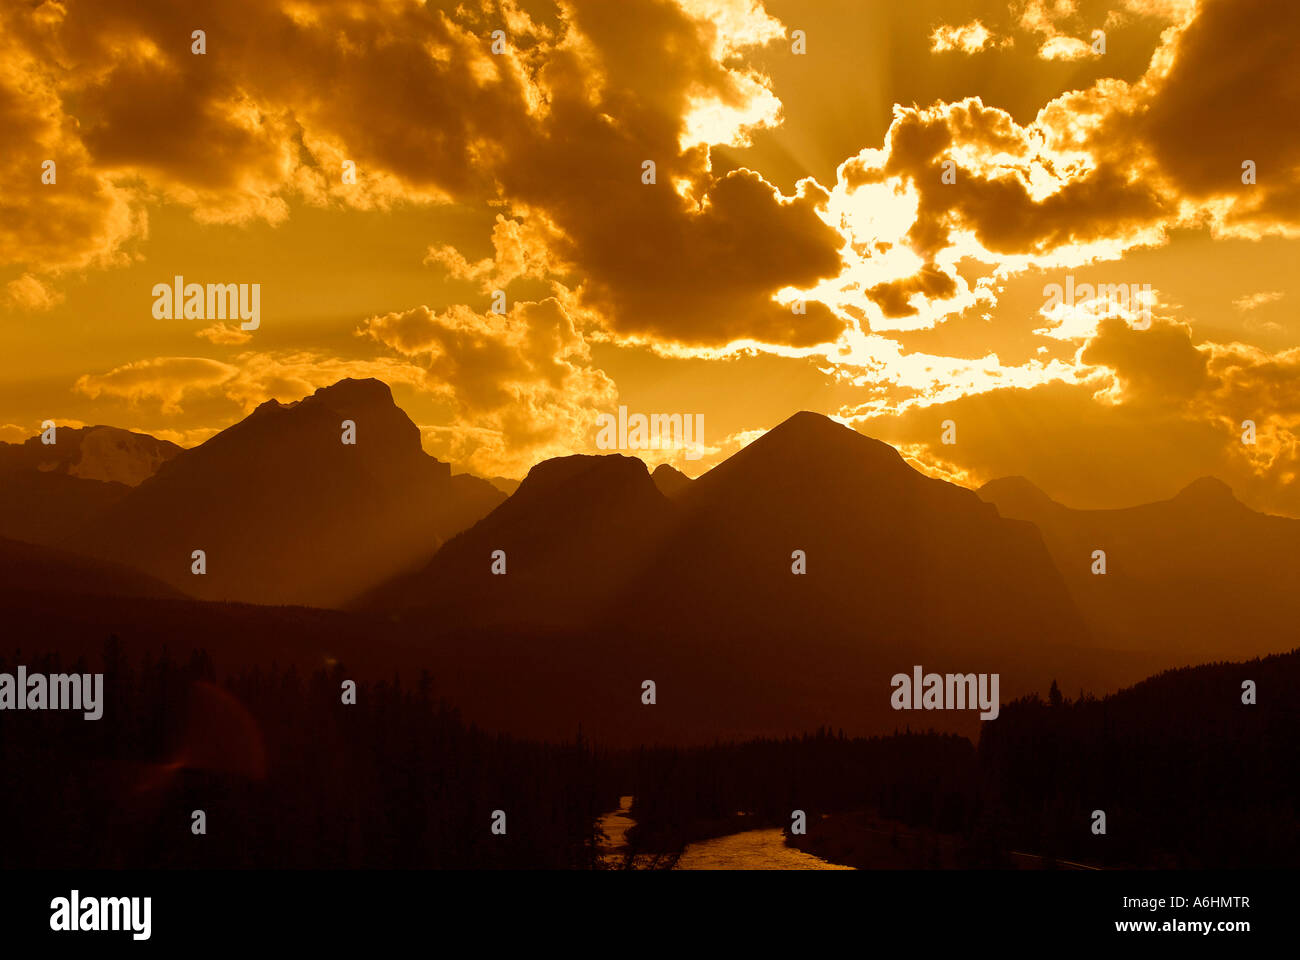 Inspirational image of sunlight over mountains. - Stock Image